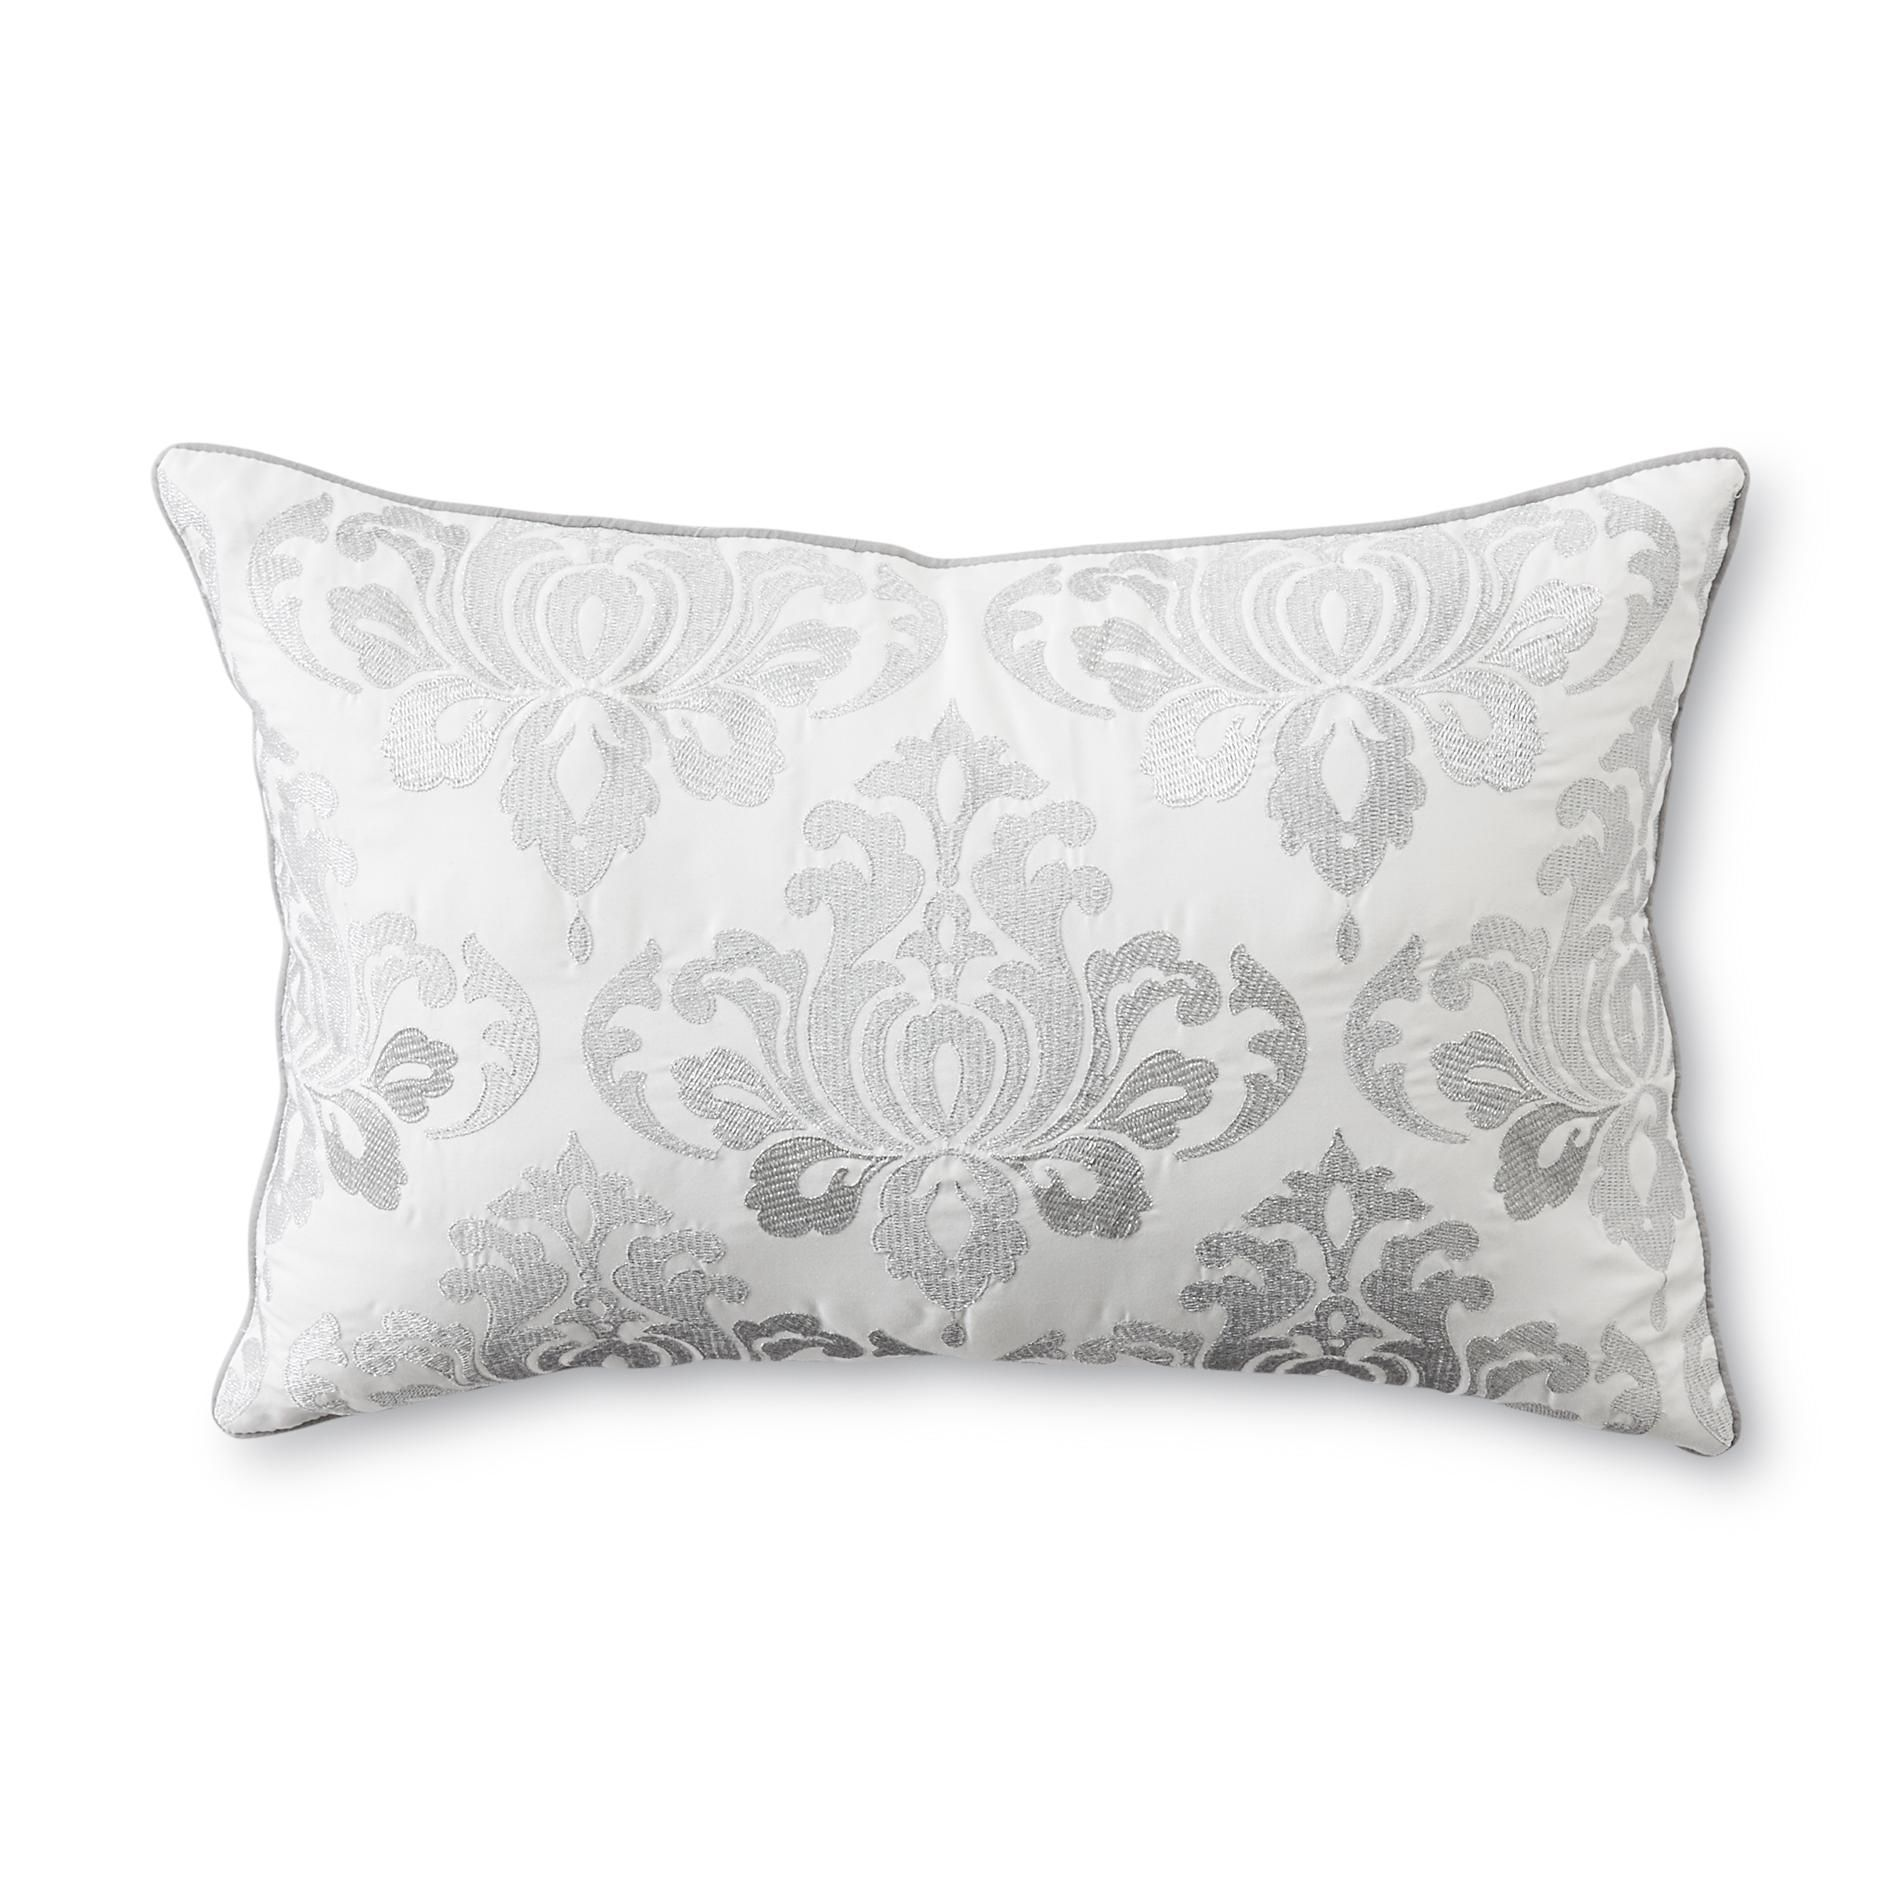 Idea Nuova,Floral Decorative Pillow, White